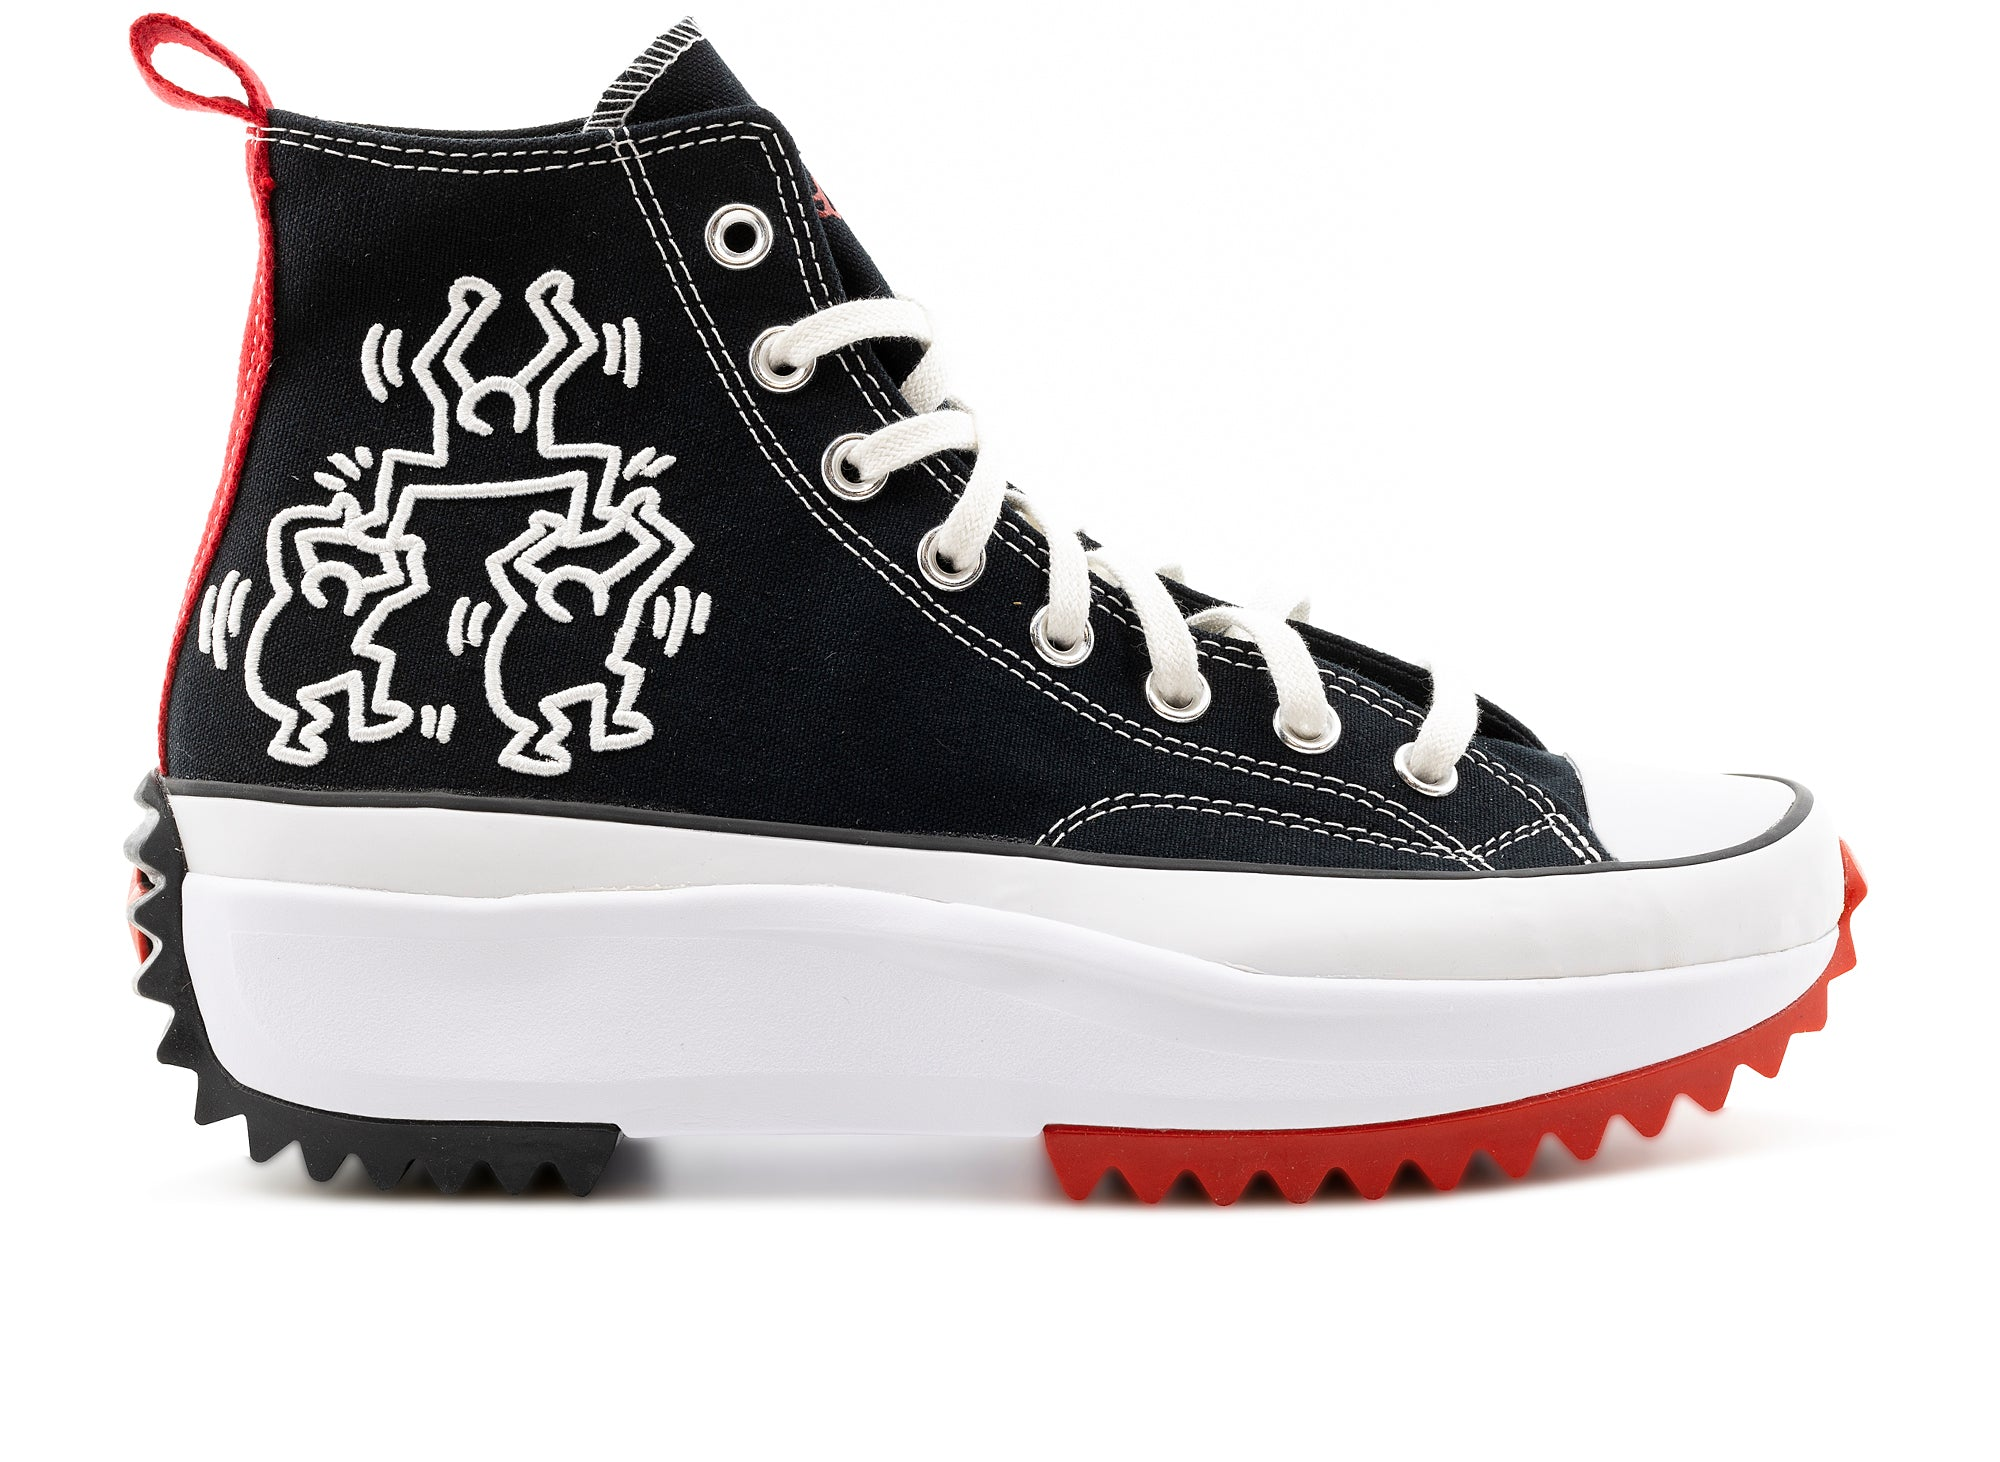 Converse x Keith Haring Run Star Hike Hi xld